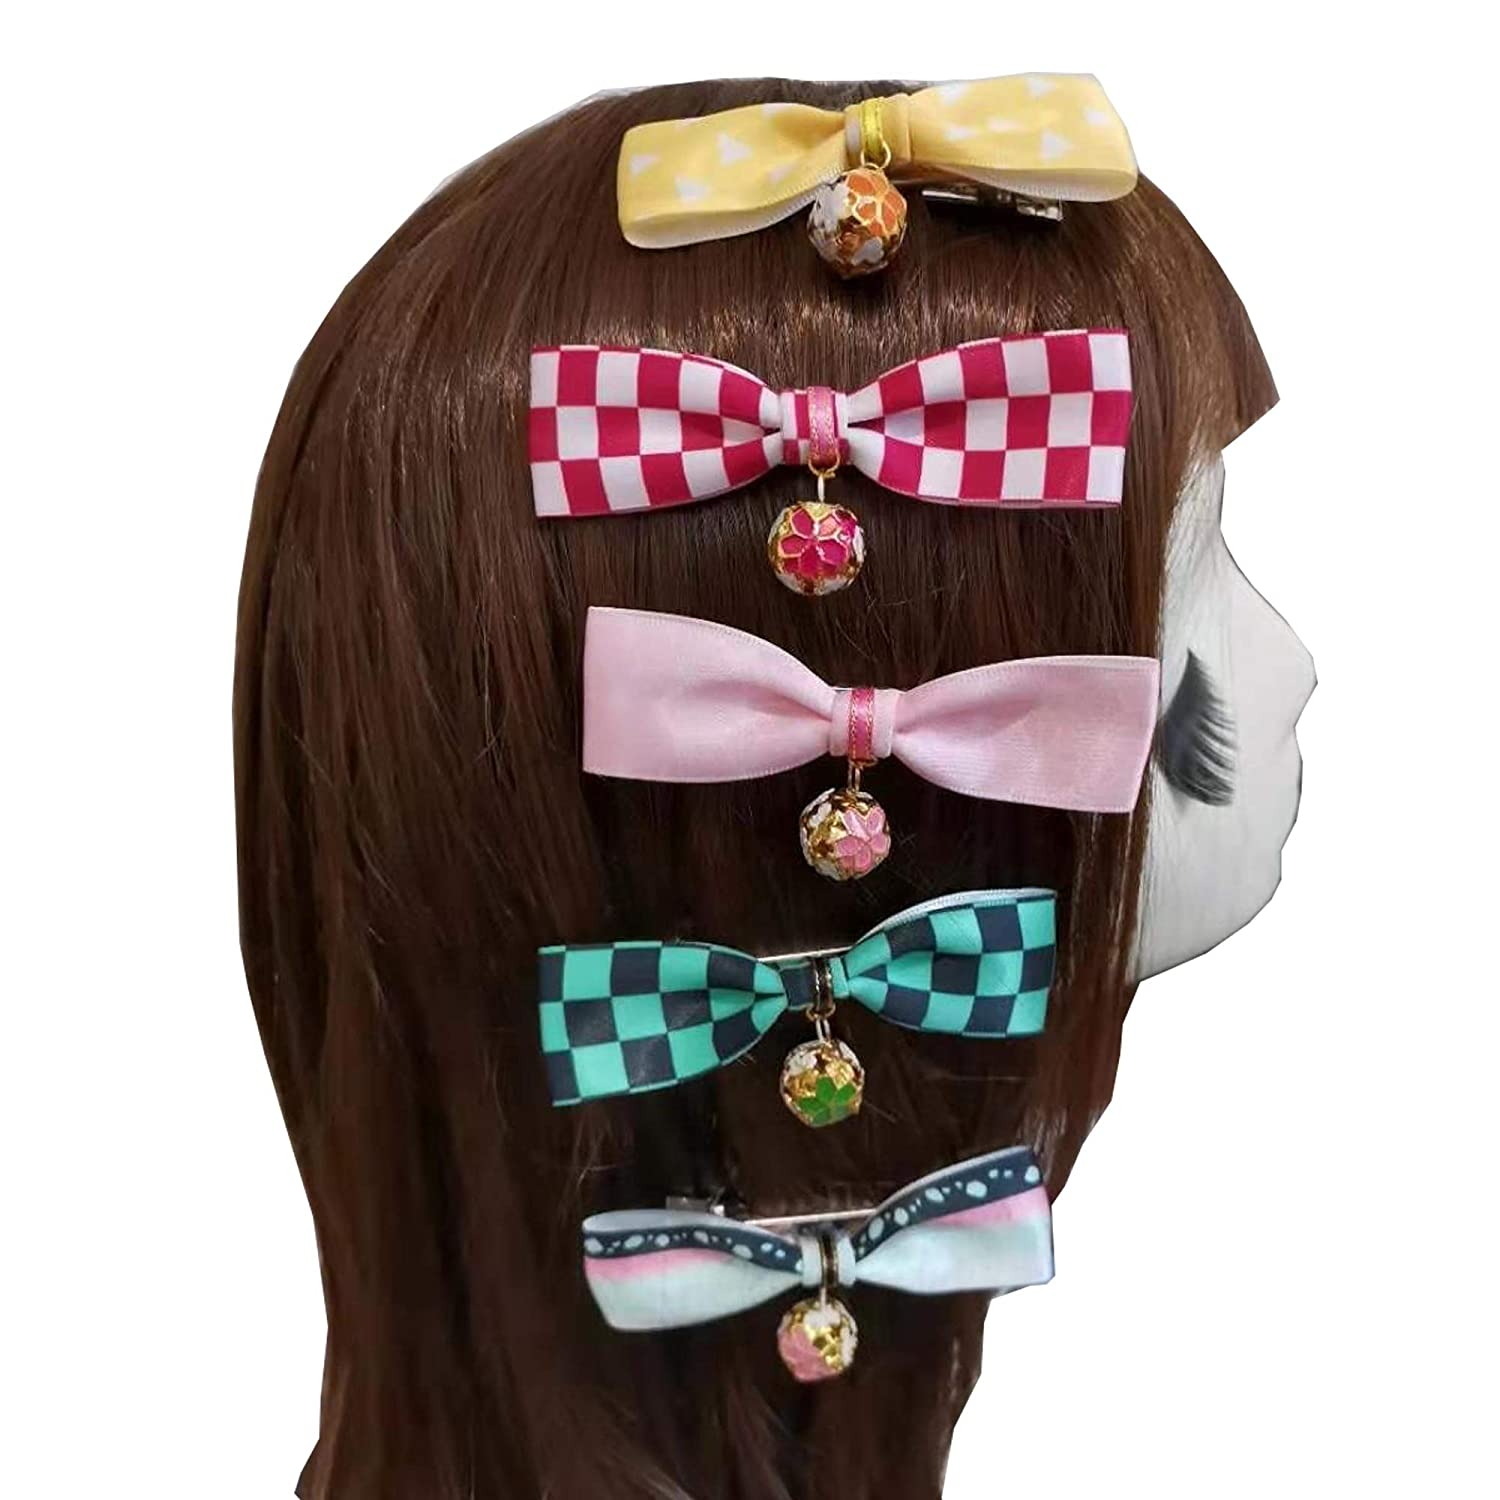 Voltageup 5PCS Merch Hairpin Tanjiro Kocho Bow Hair Clip Hair Tie Anime Hair Ropes Bow with Bells for Wowen